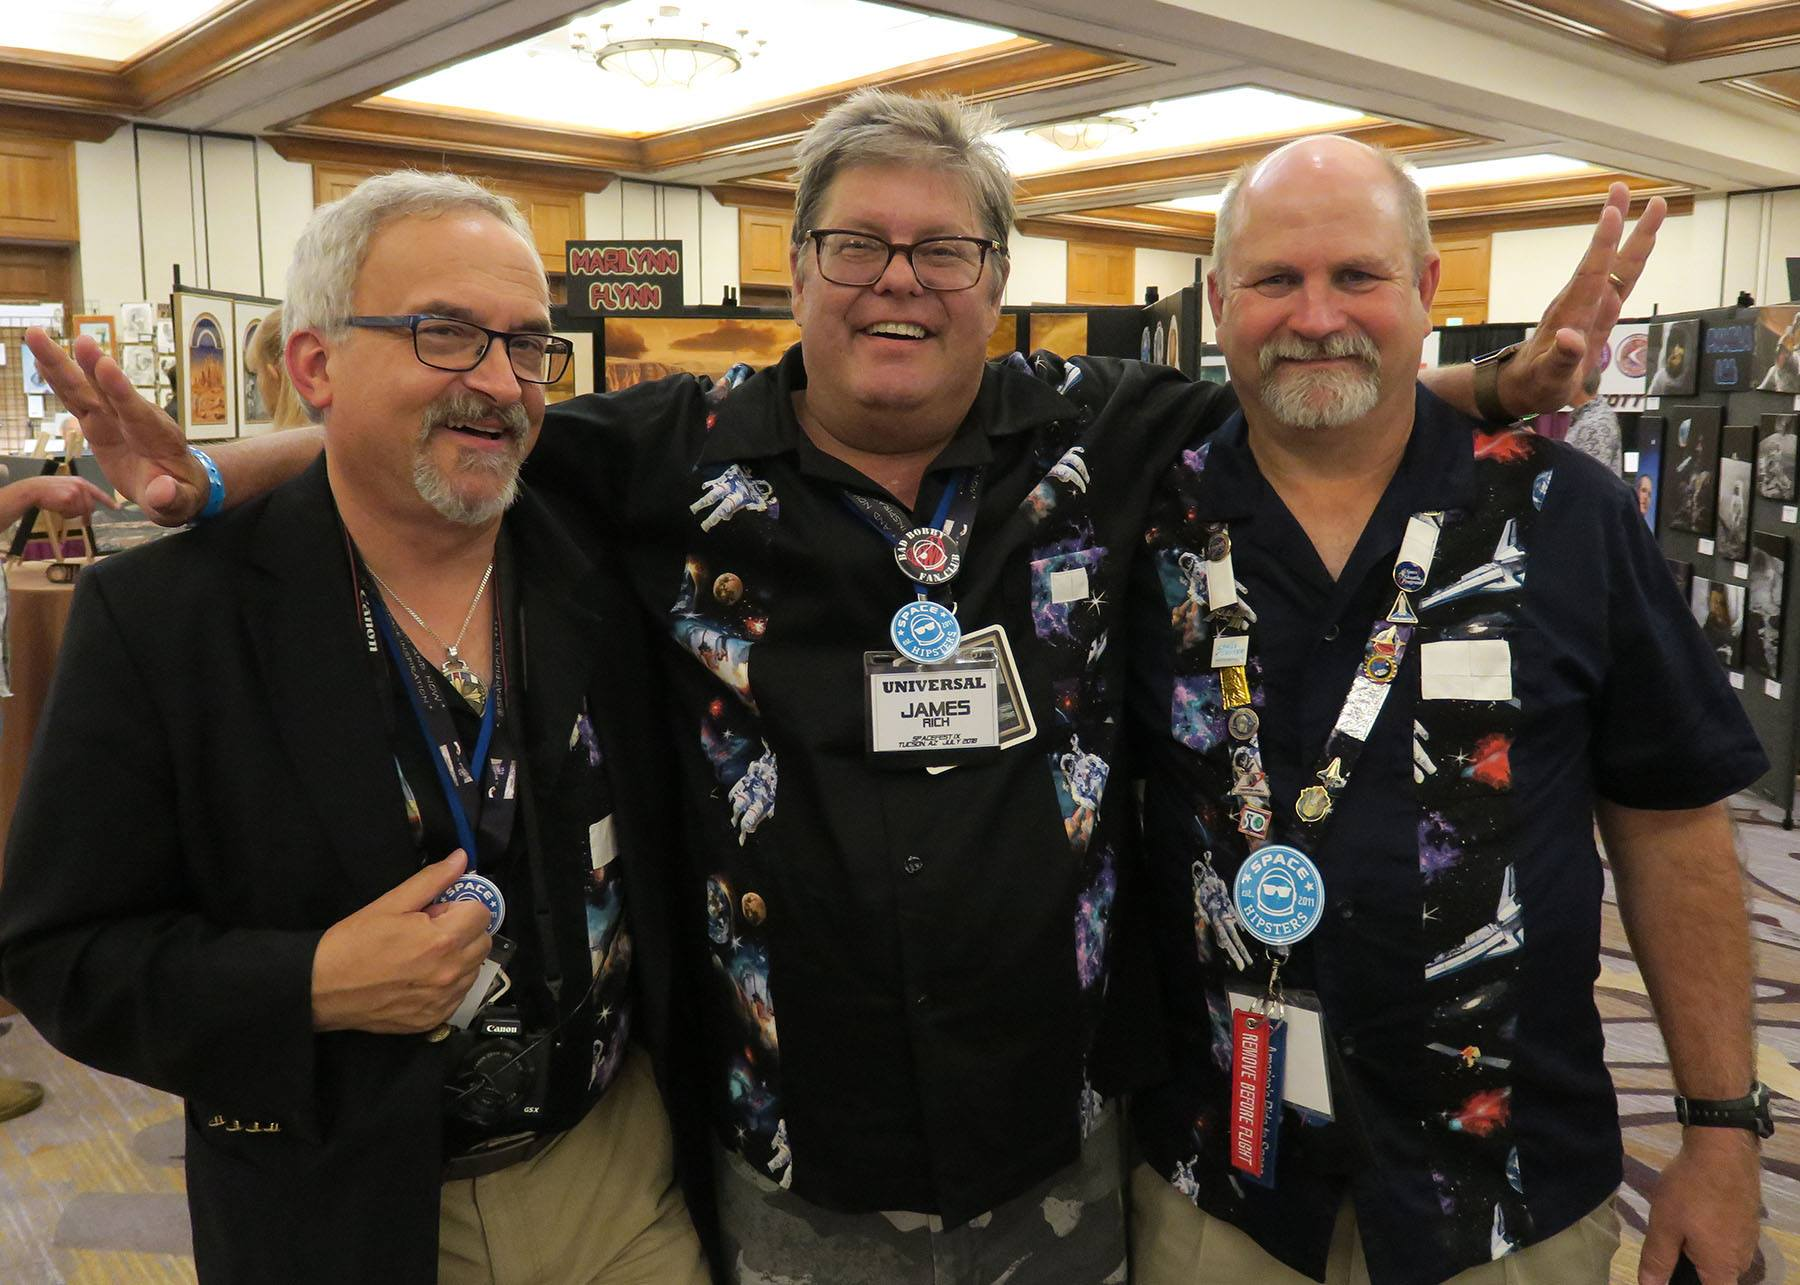 L-R: Mark Usciak, Jamie Rich, and Chris Boyd sporting their Sew Sister shirts! (Photo: Mark Usciak)